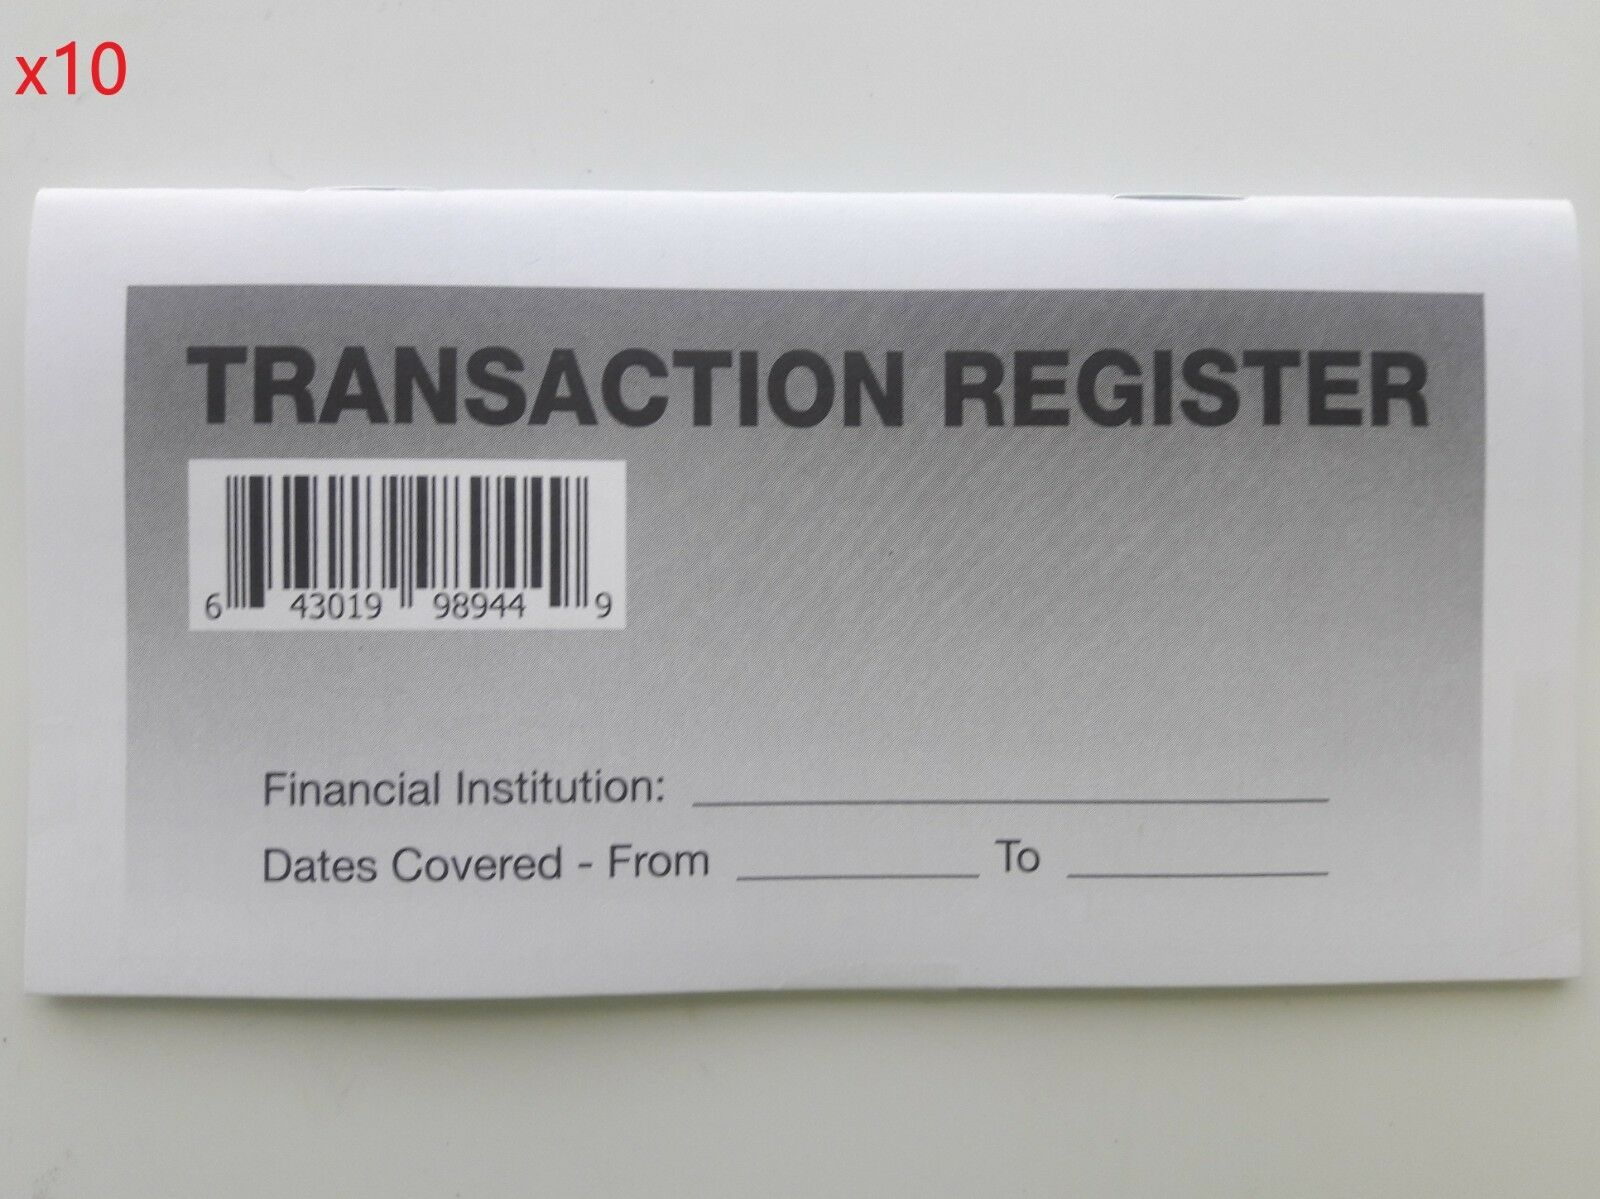 10 - Checkbook Transaction Registers - 2019-21 Calendar - Check Book Bank